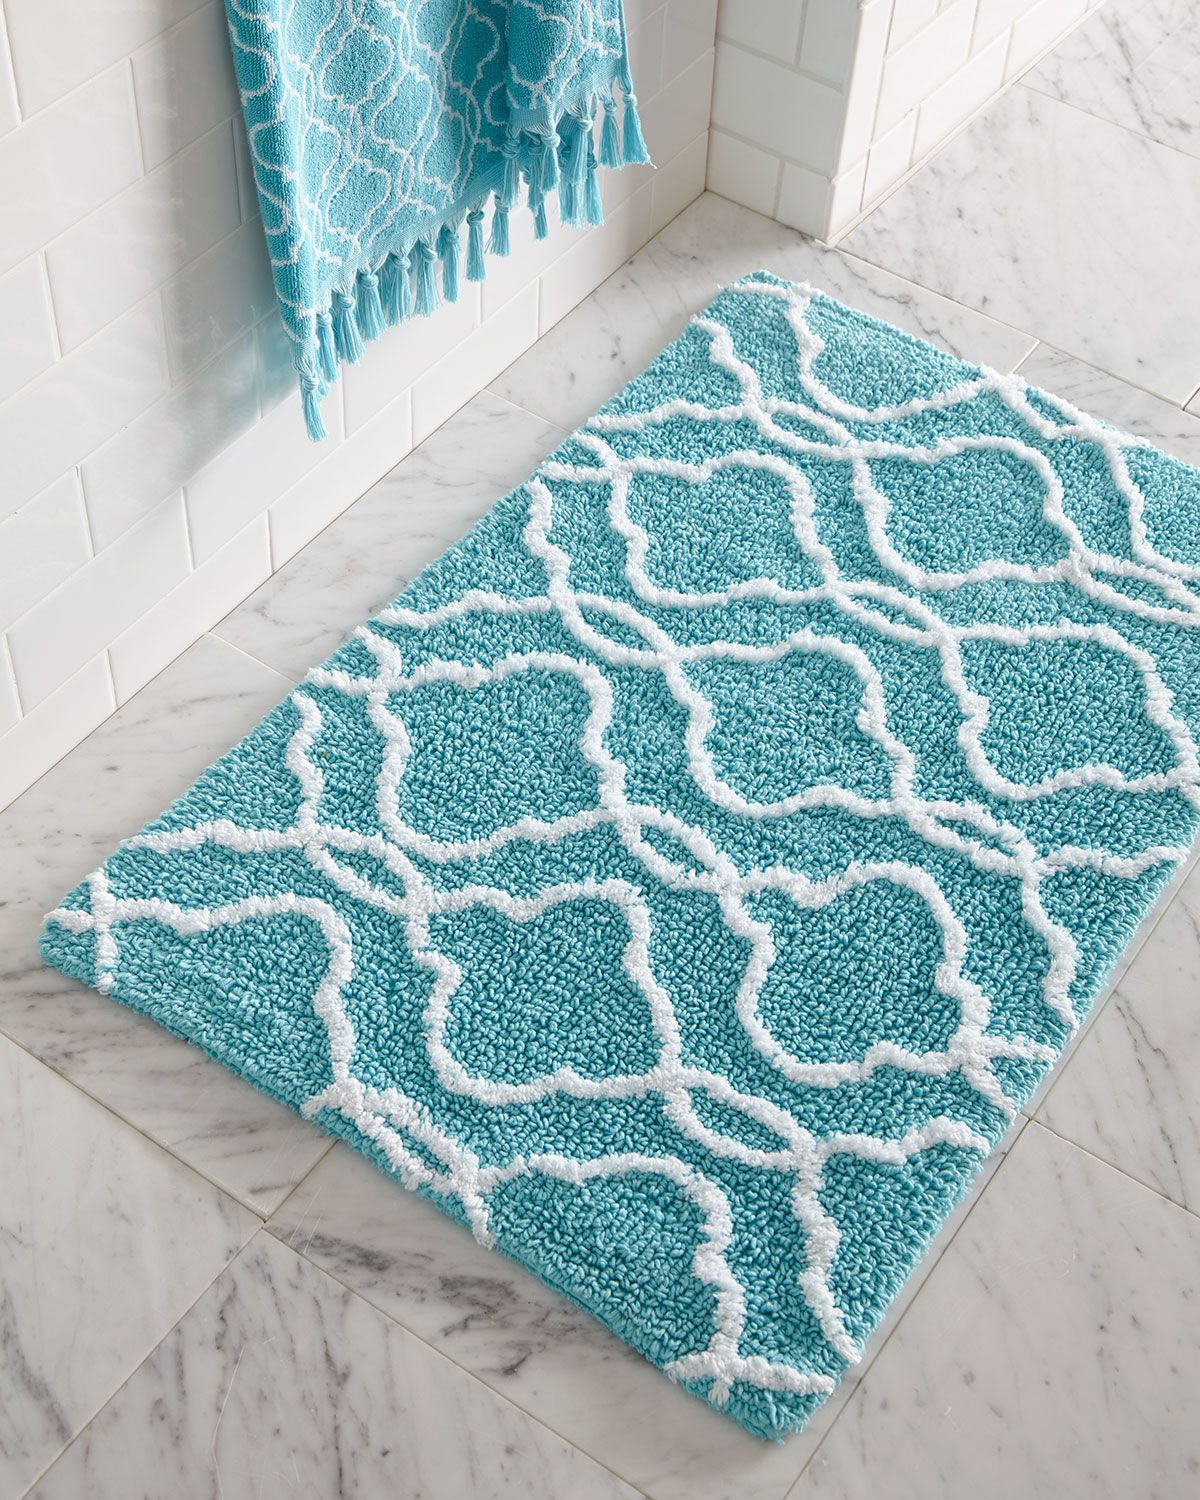 Dena Home Tangiers Bath Rug Design Style Coastal Rhythms - Turquoise bathroom rugs for bathroom decorating ideas